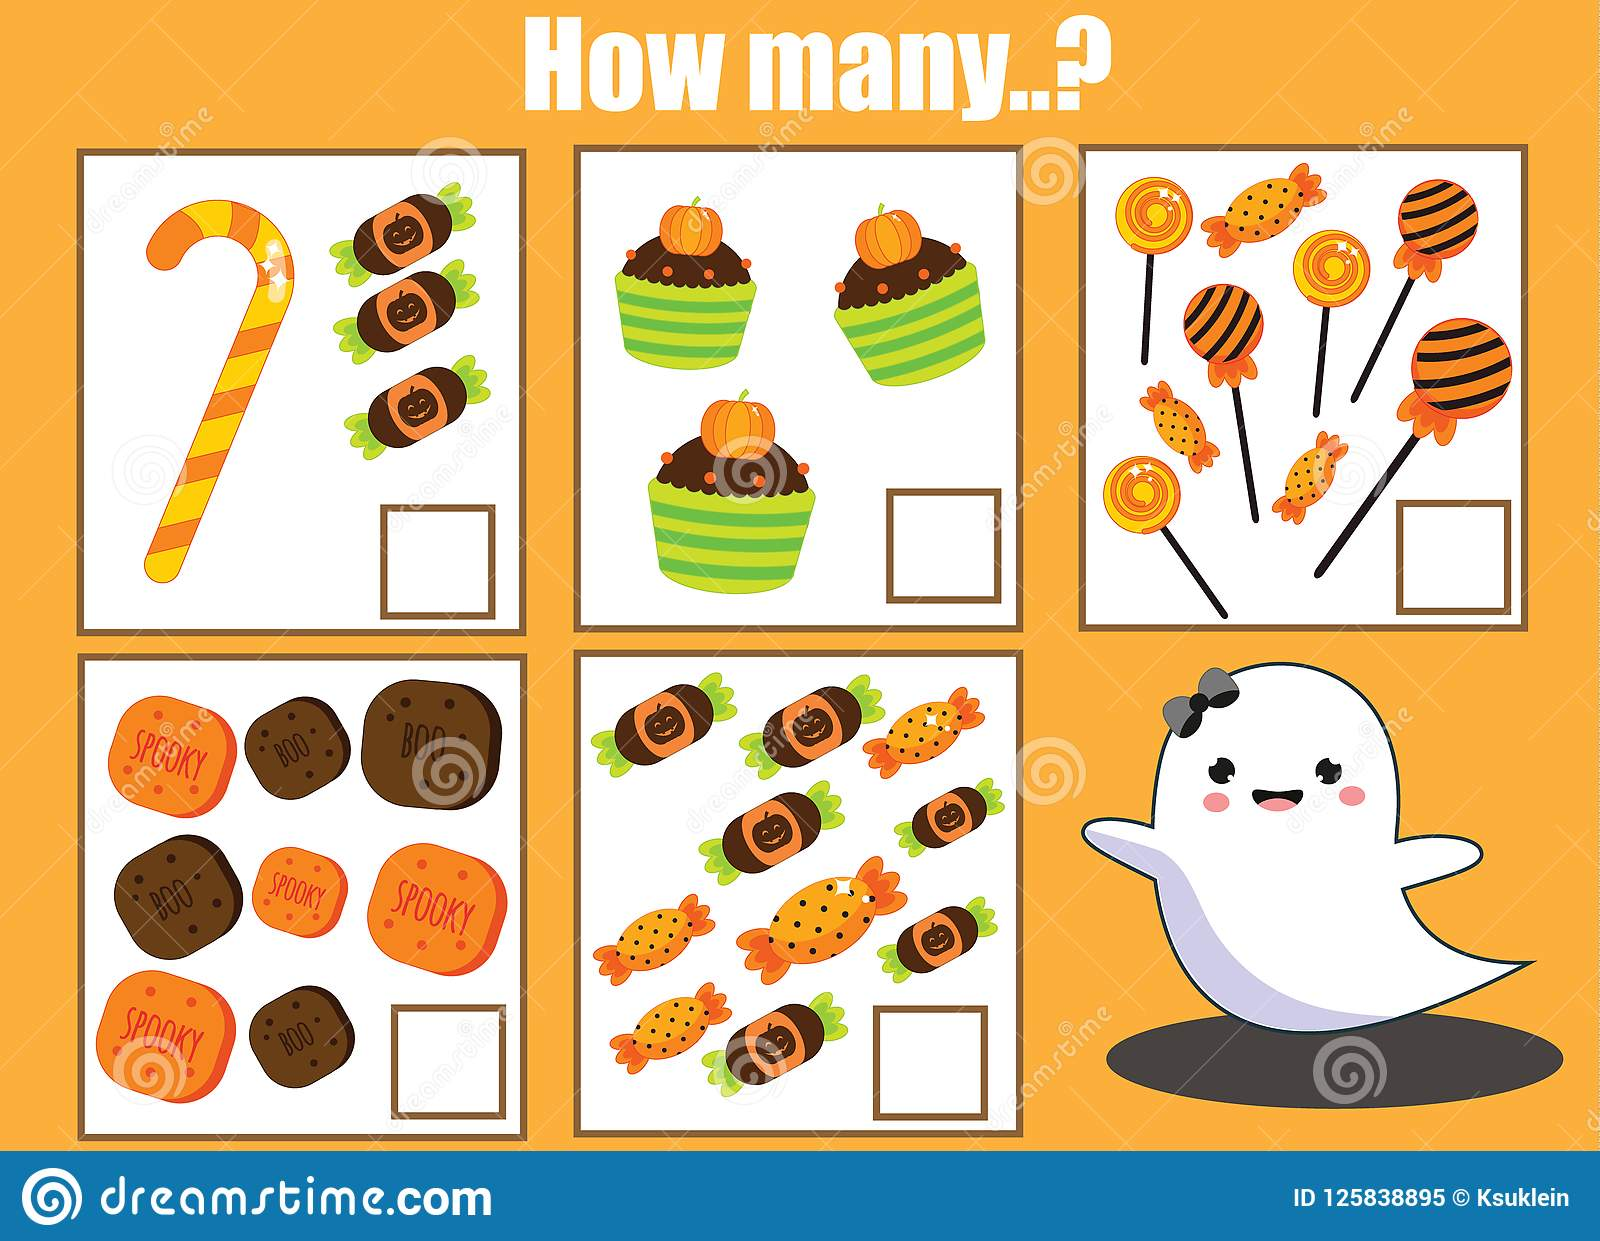 Counting Educational Children Activity Halloween Theme